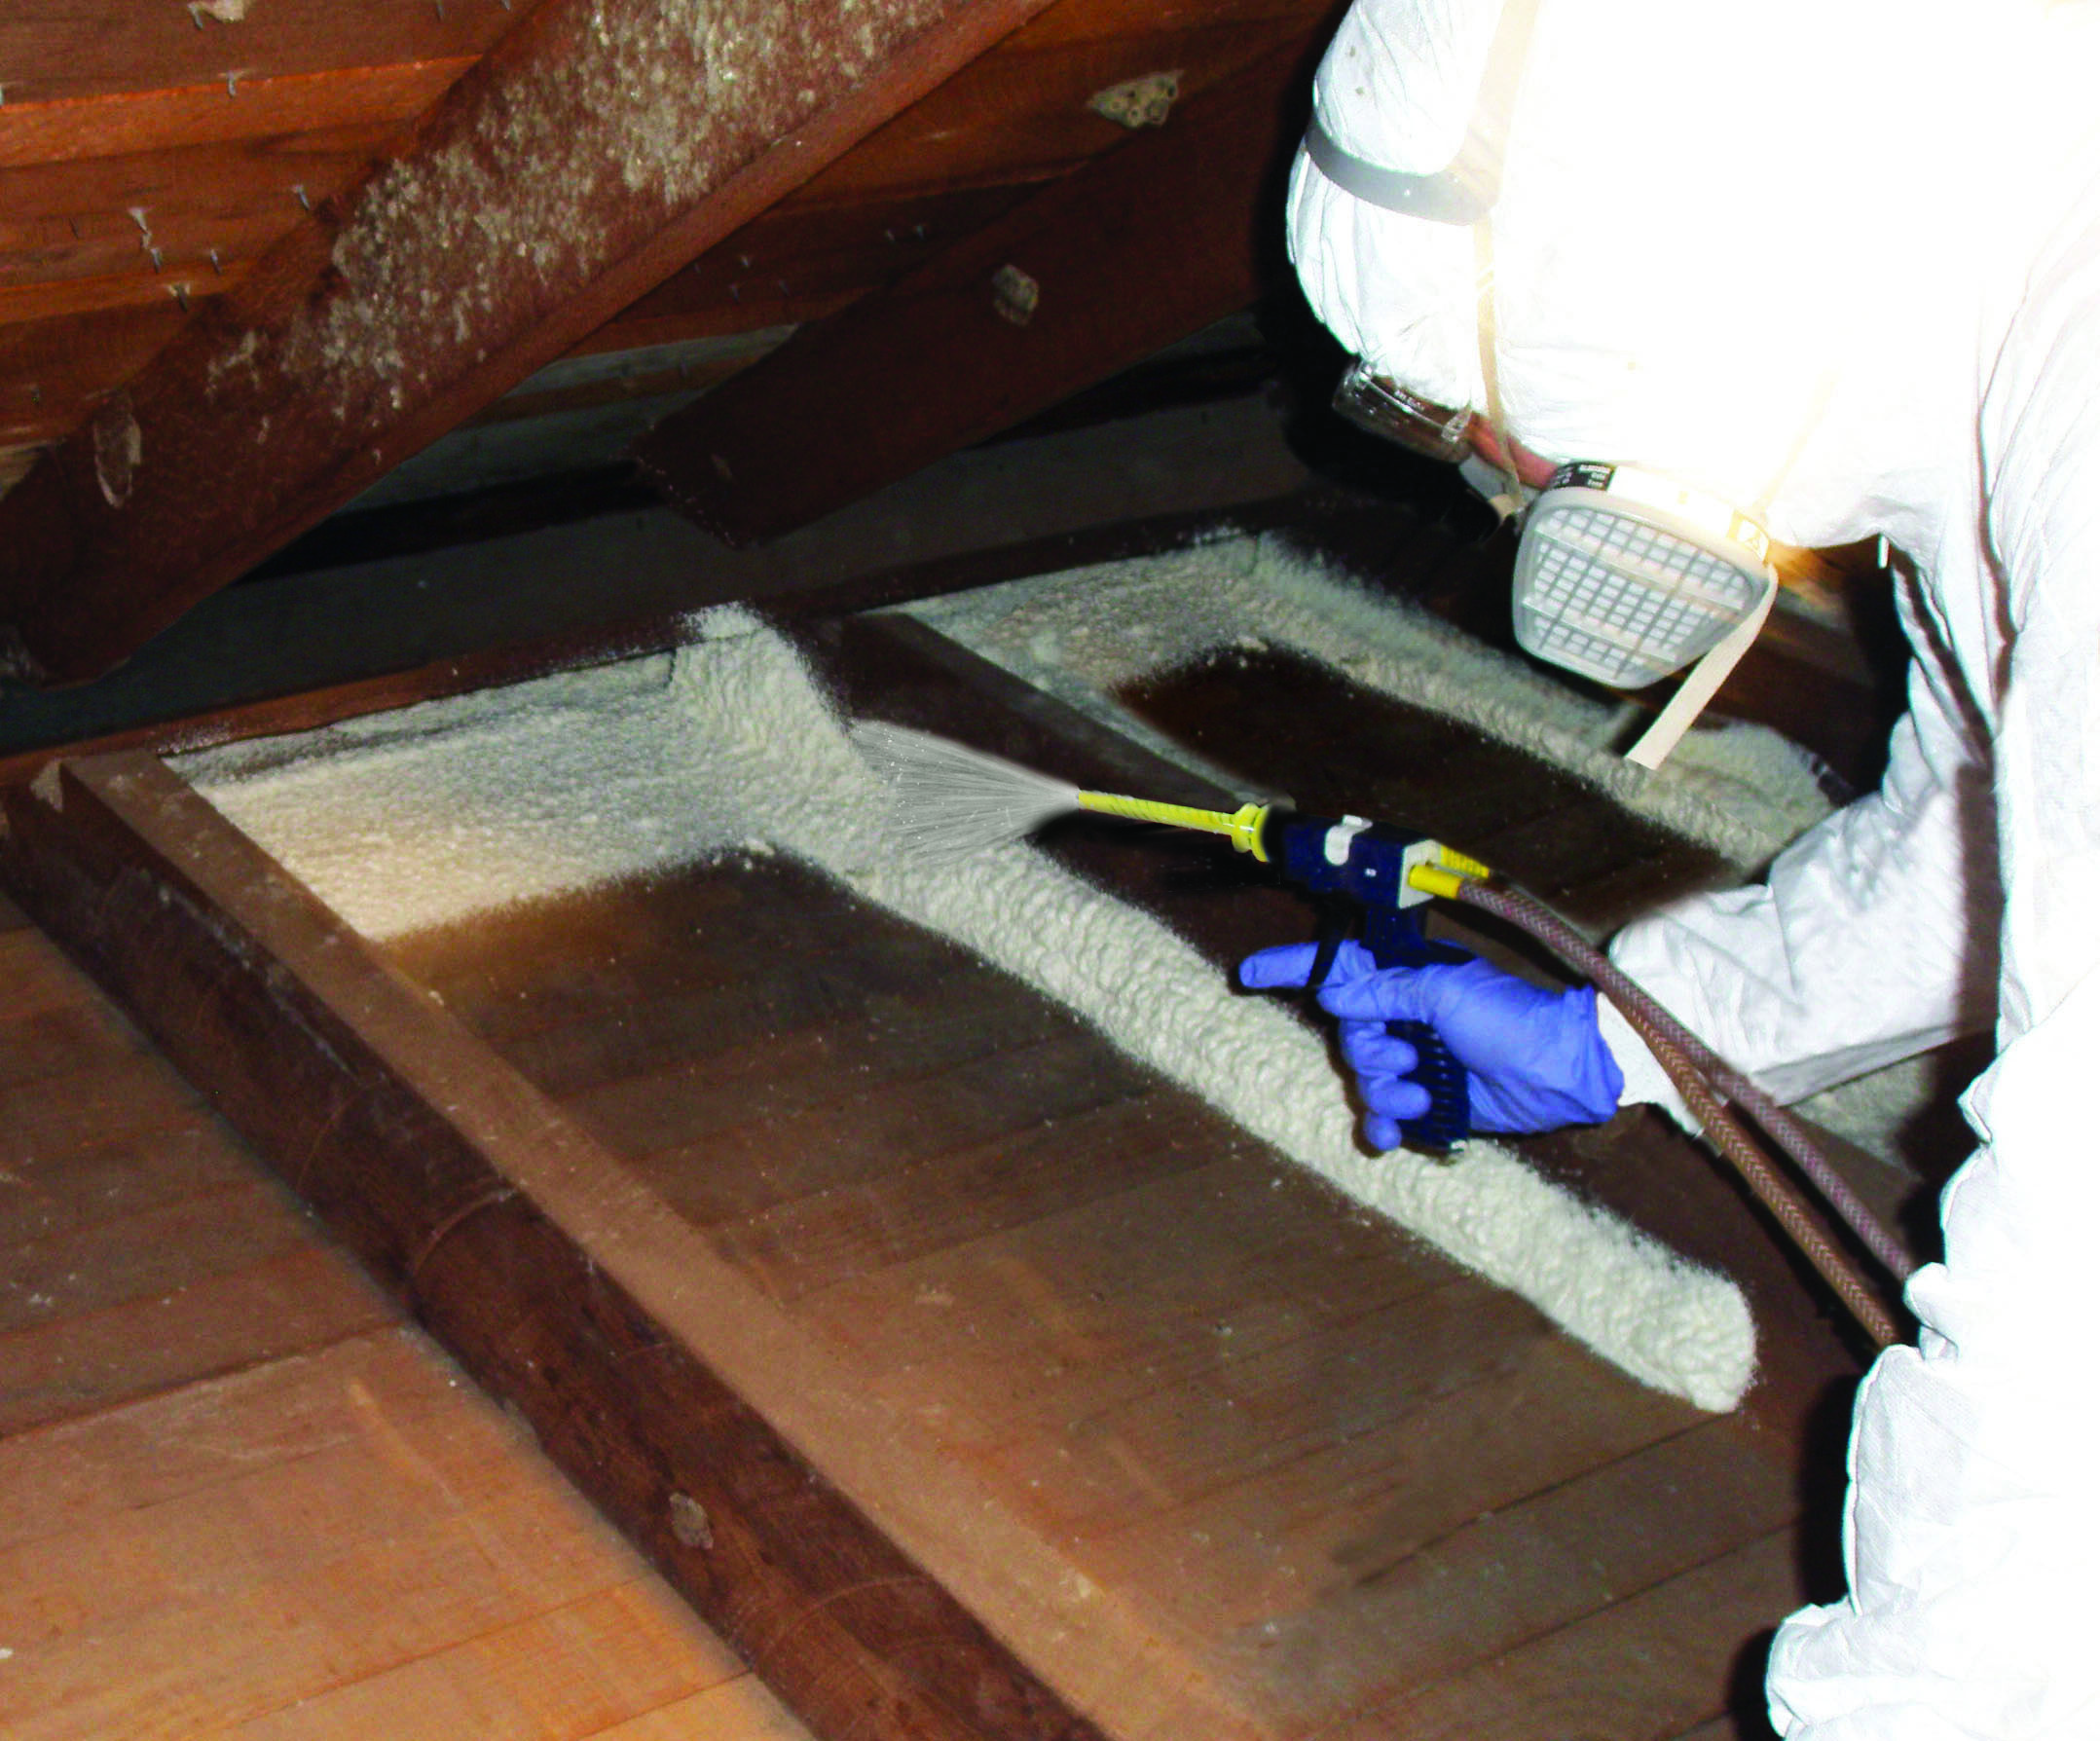 Attic Floor Wall Junctures Spray Insulating Foam Sealant To Cover Edges Of Wall Plate Where It Meets Attic Floor And Attic Flooring Plates On Wall Attic Design